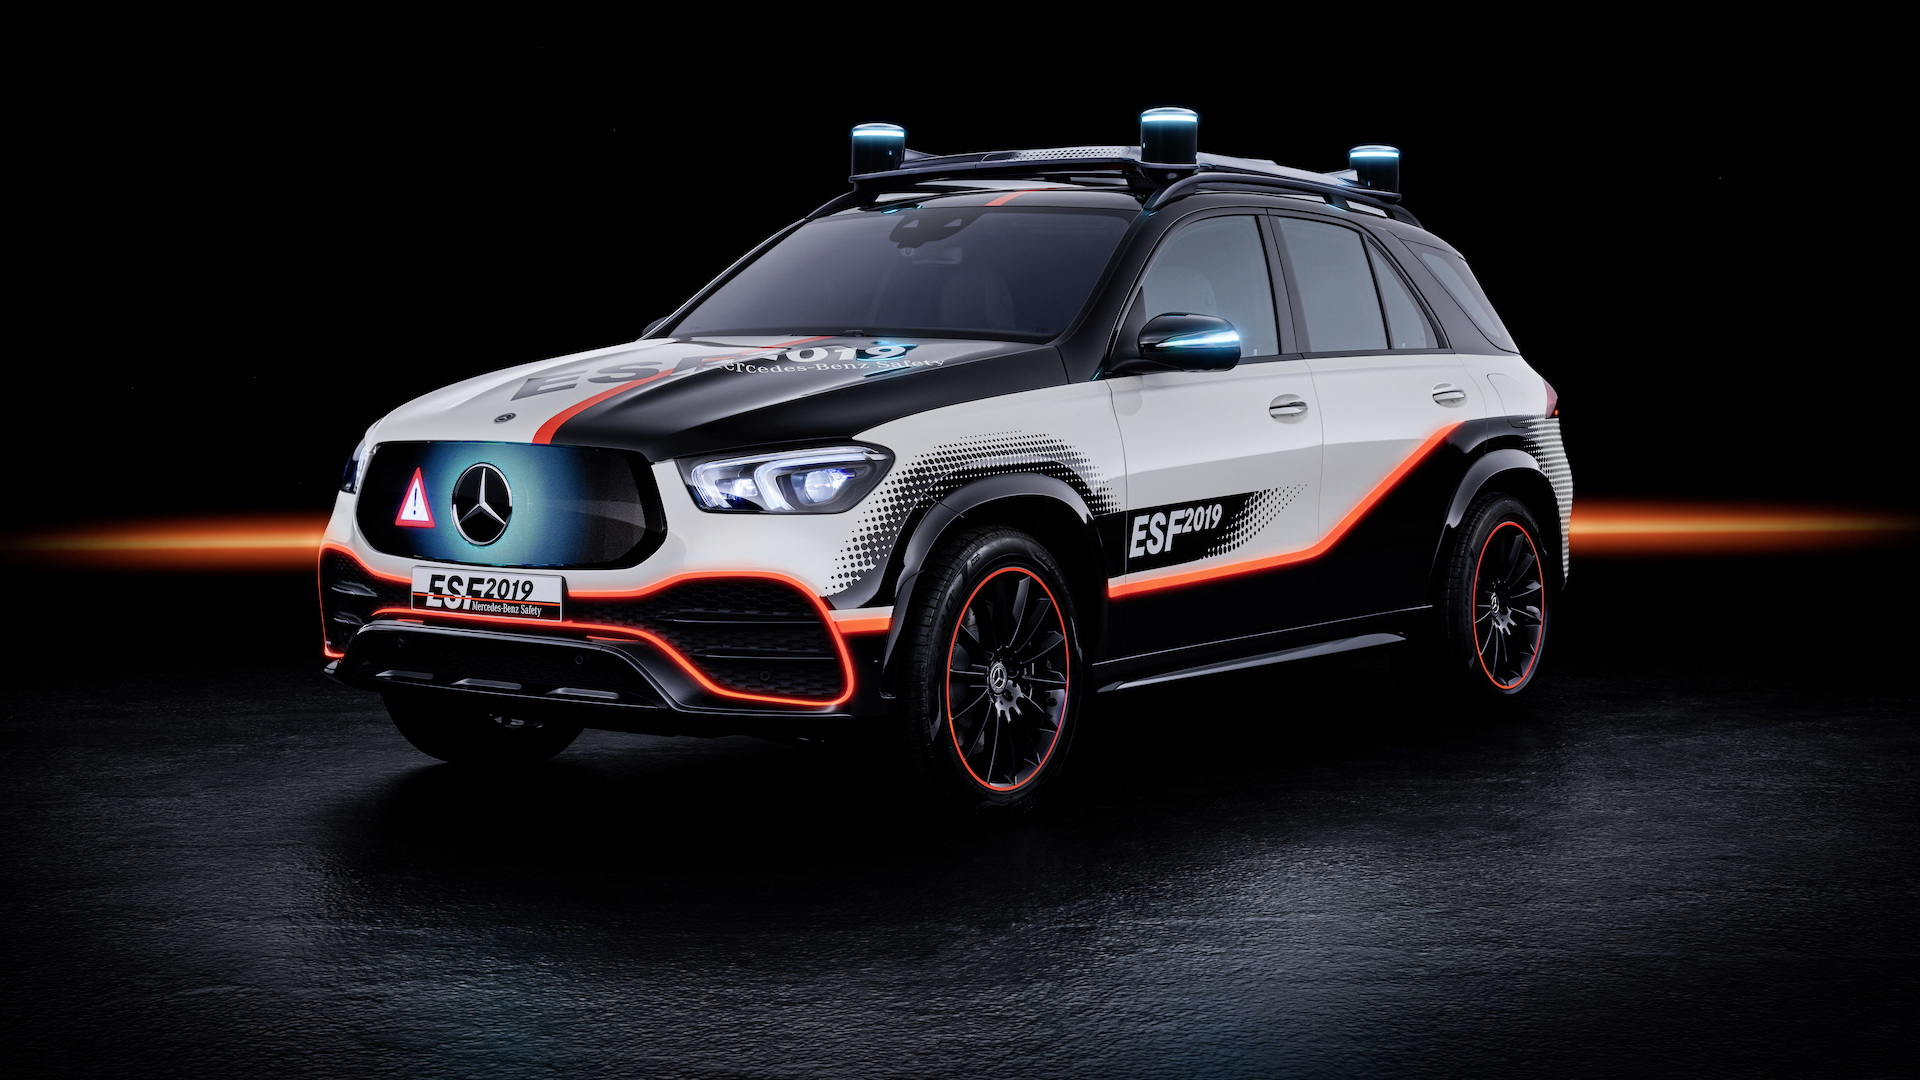 Mercedes-Benz ESF 2019 safety car concept